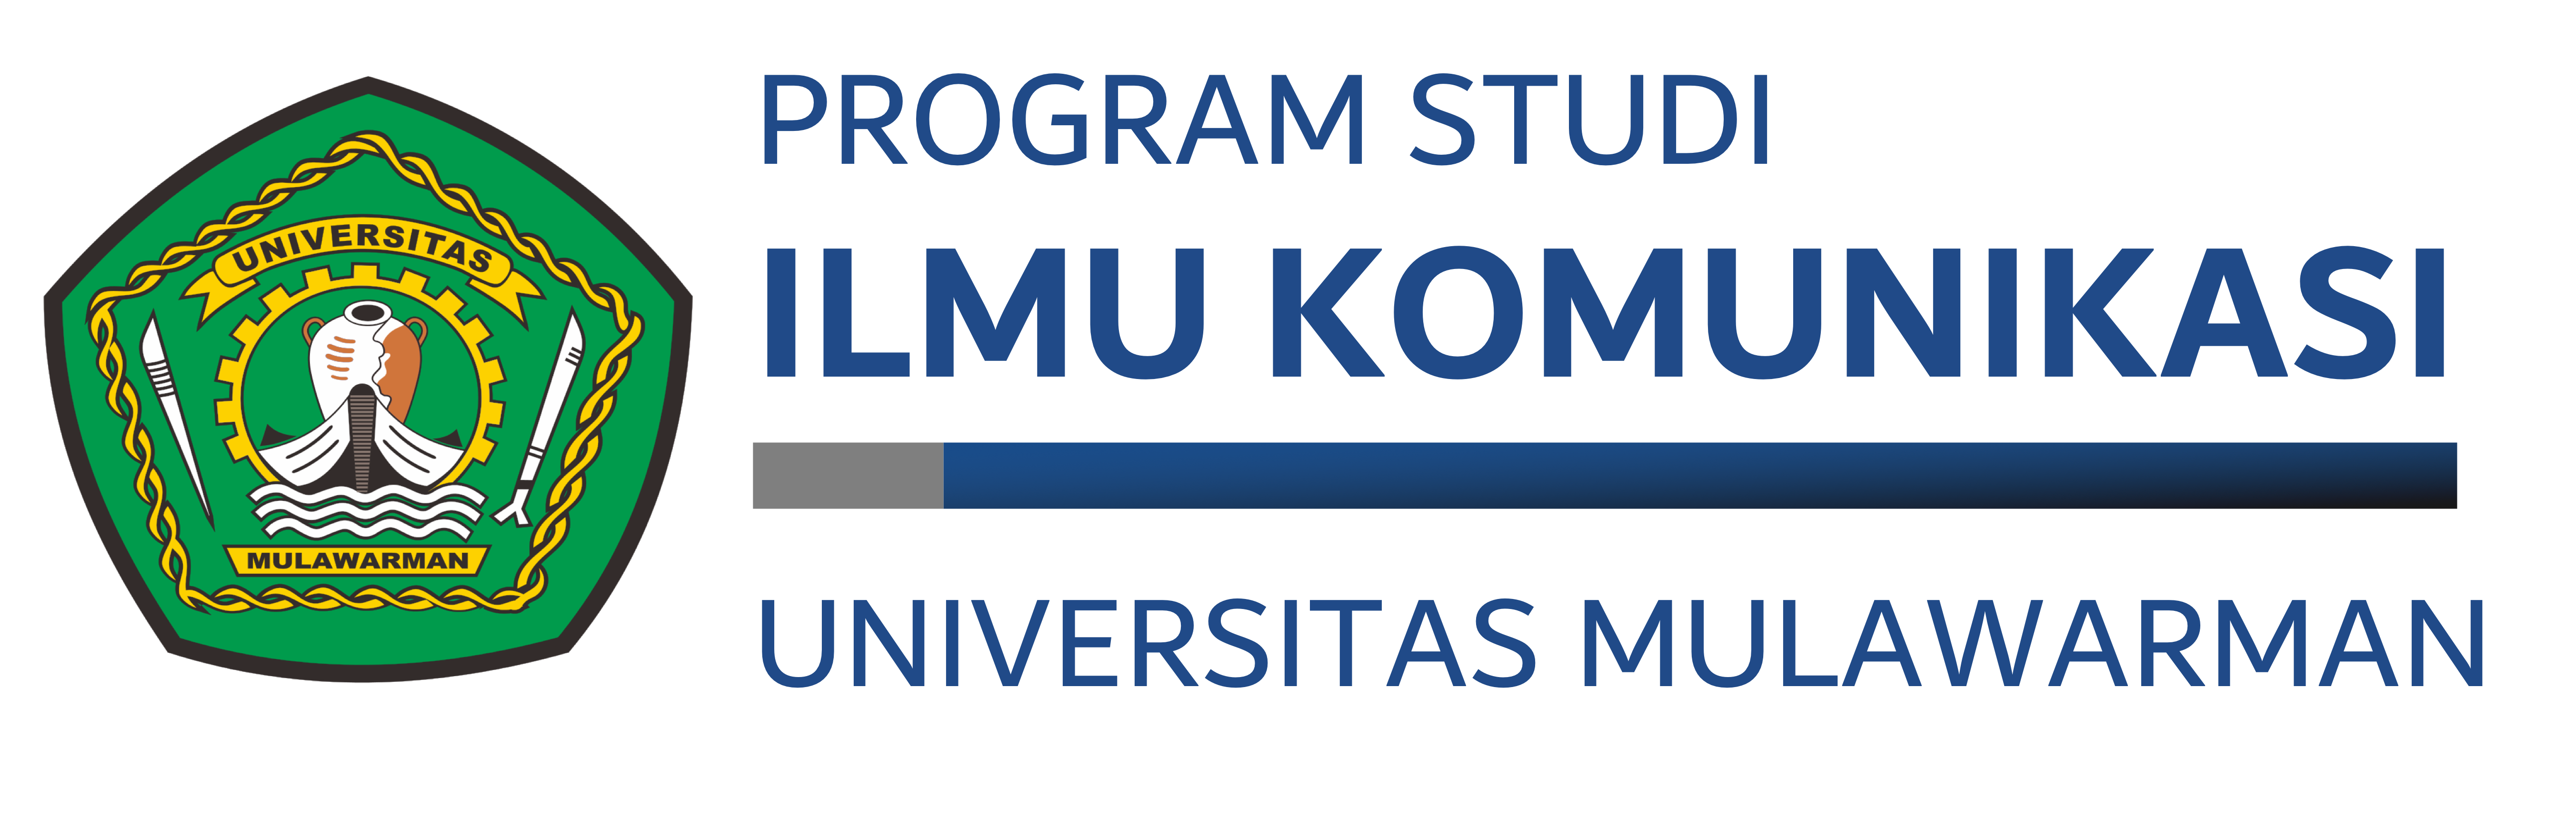 Program Studi Ilmu Komunikasi